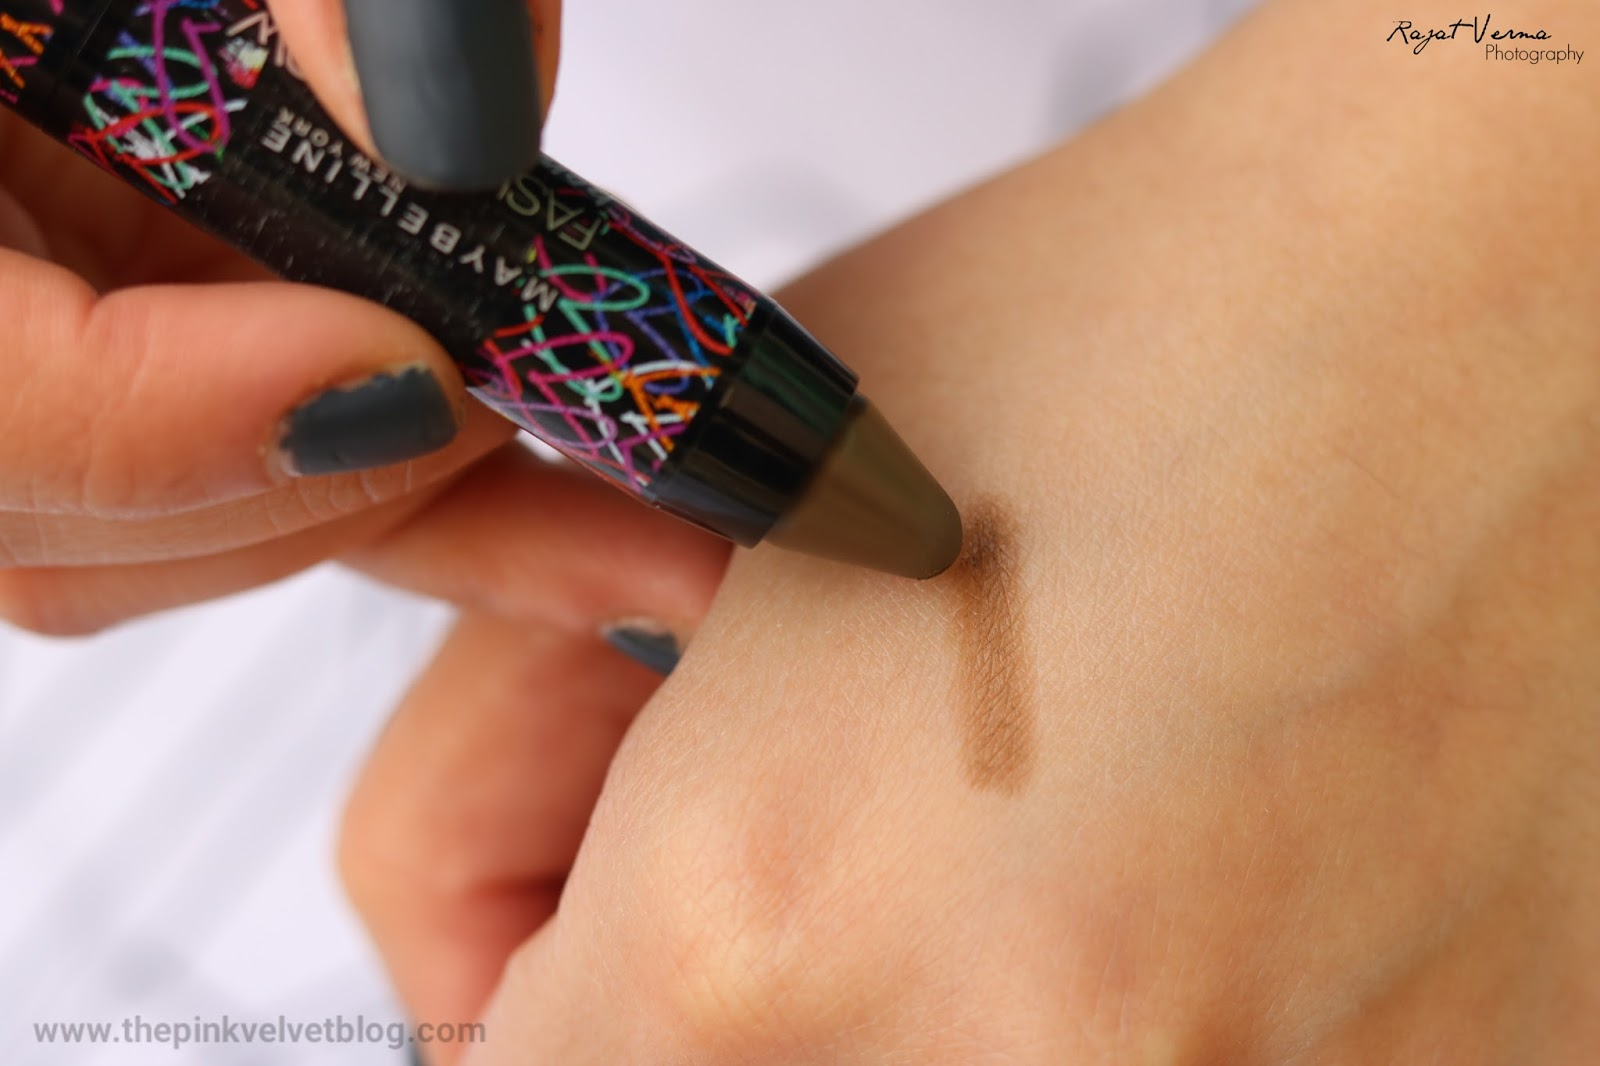 Maybelline Graffiti Collection Brow Crayon - BR 1 - Swatch